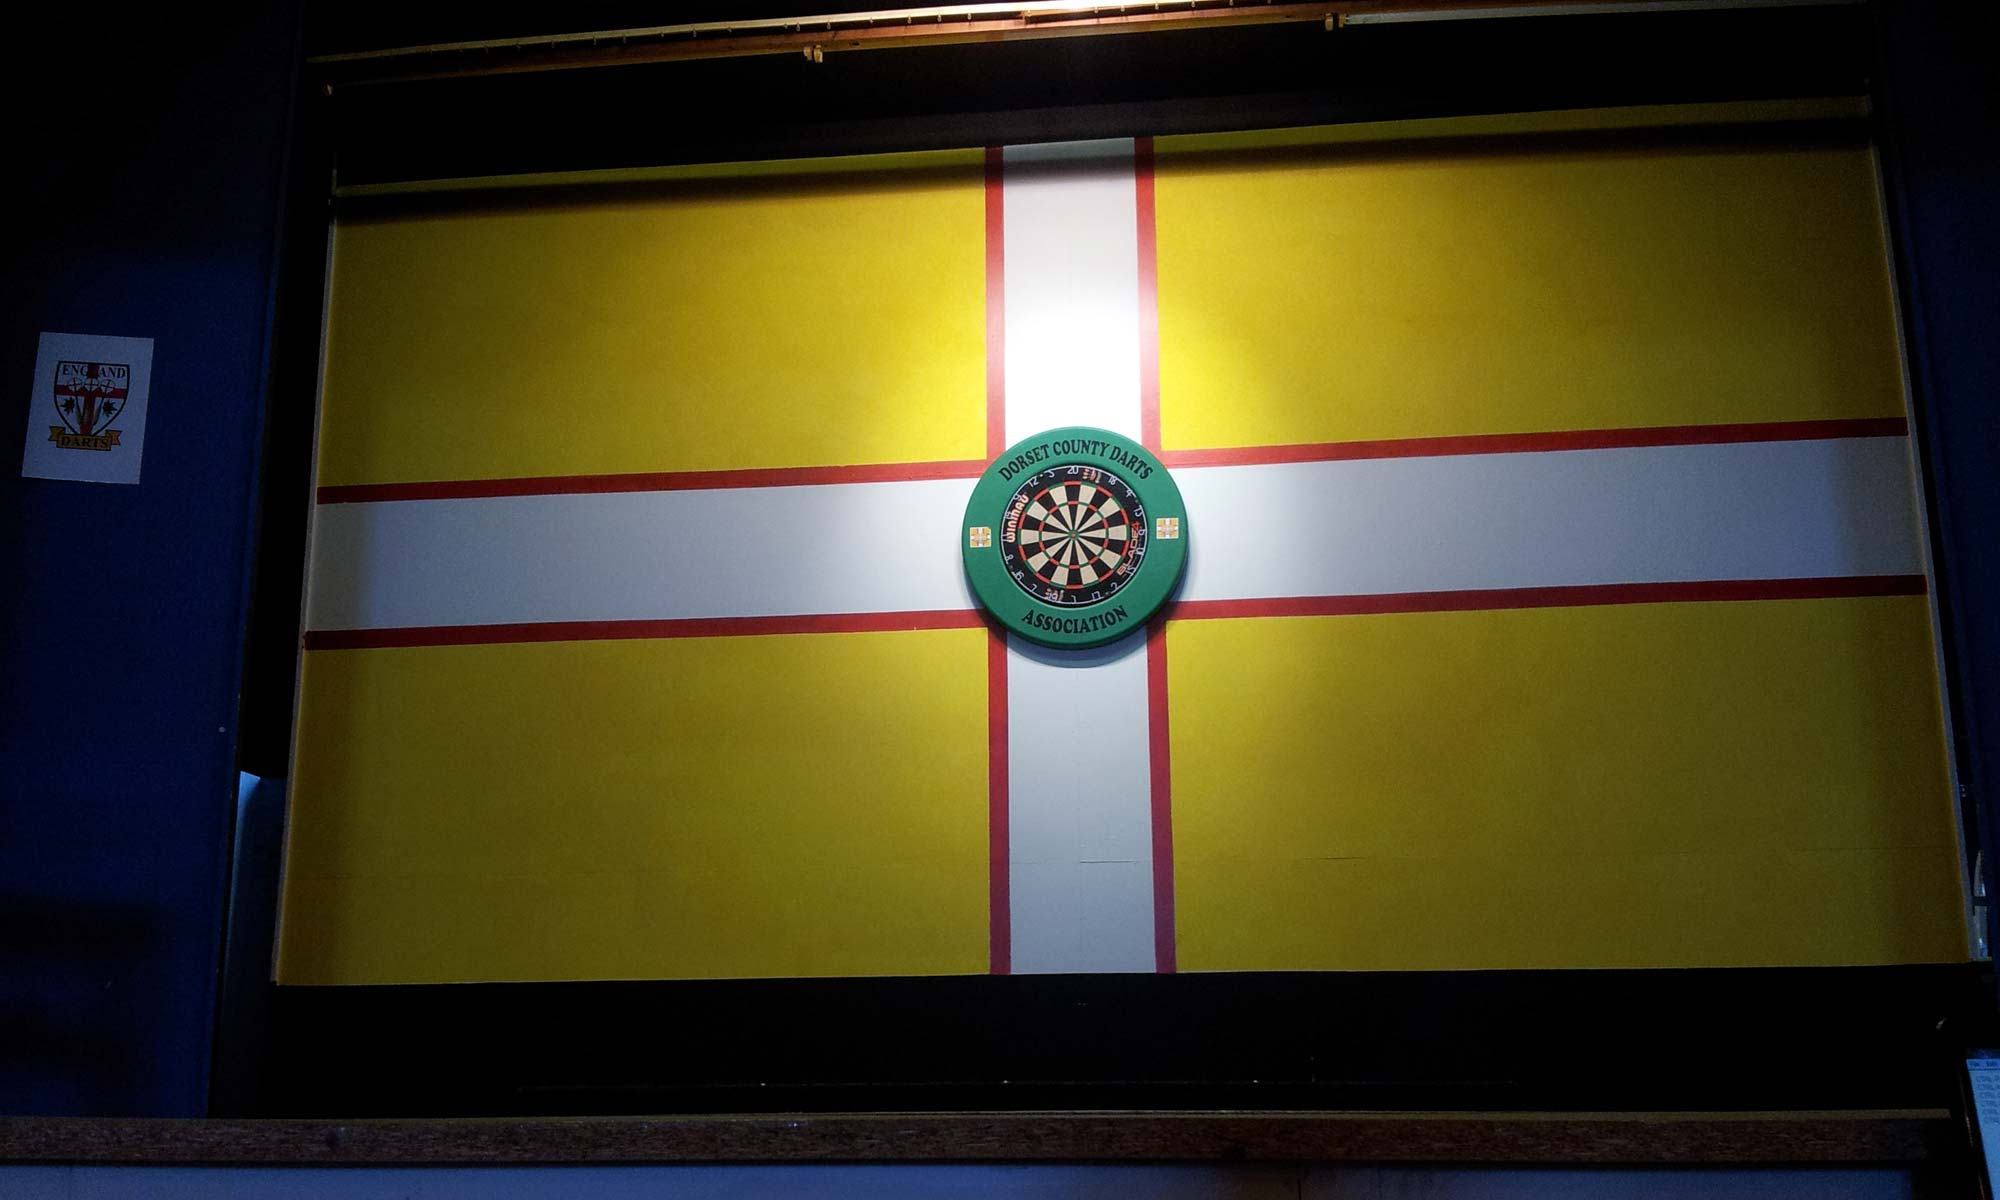 Dorset County Darts Association Stage